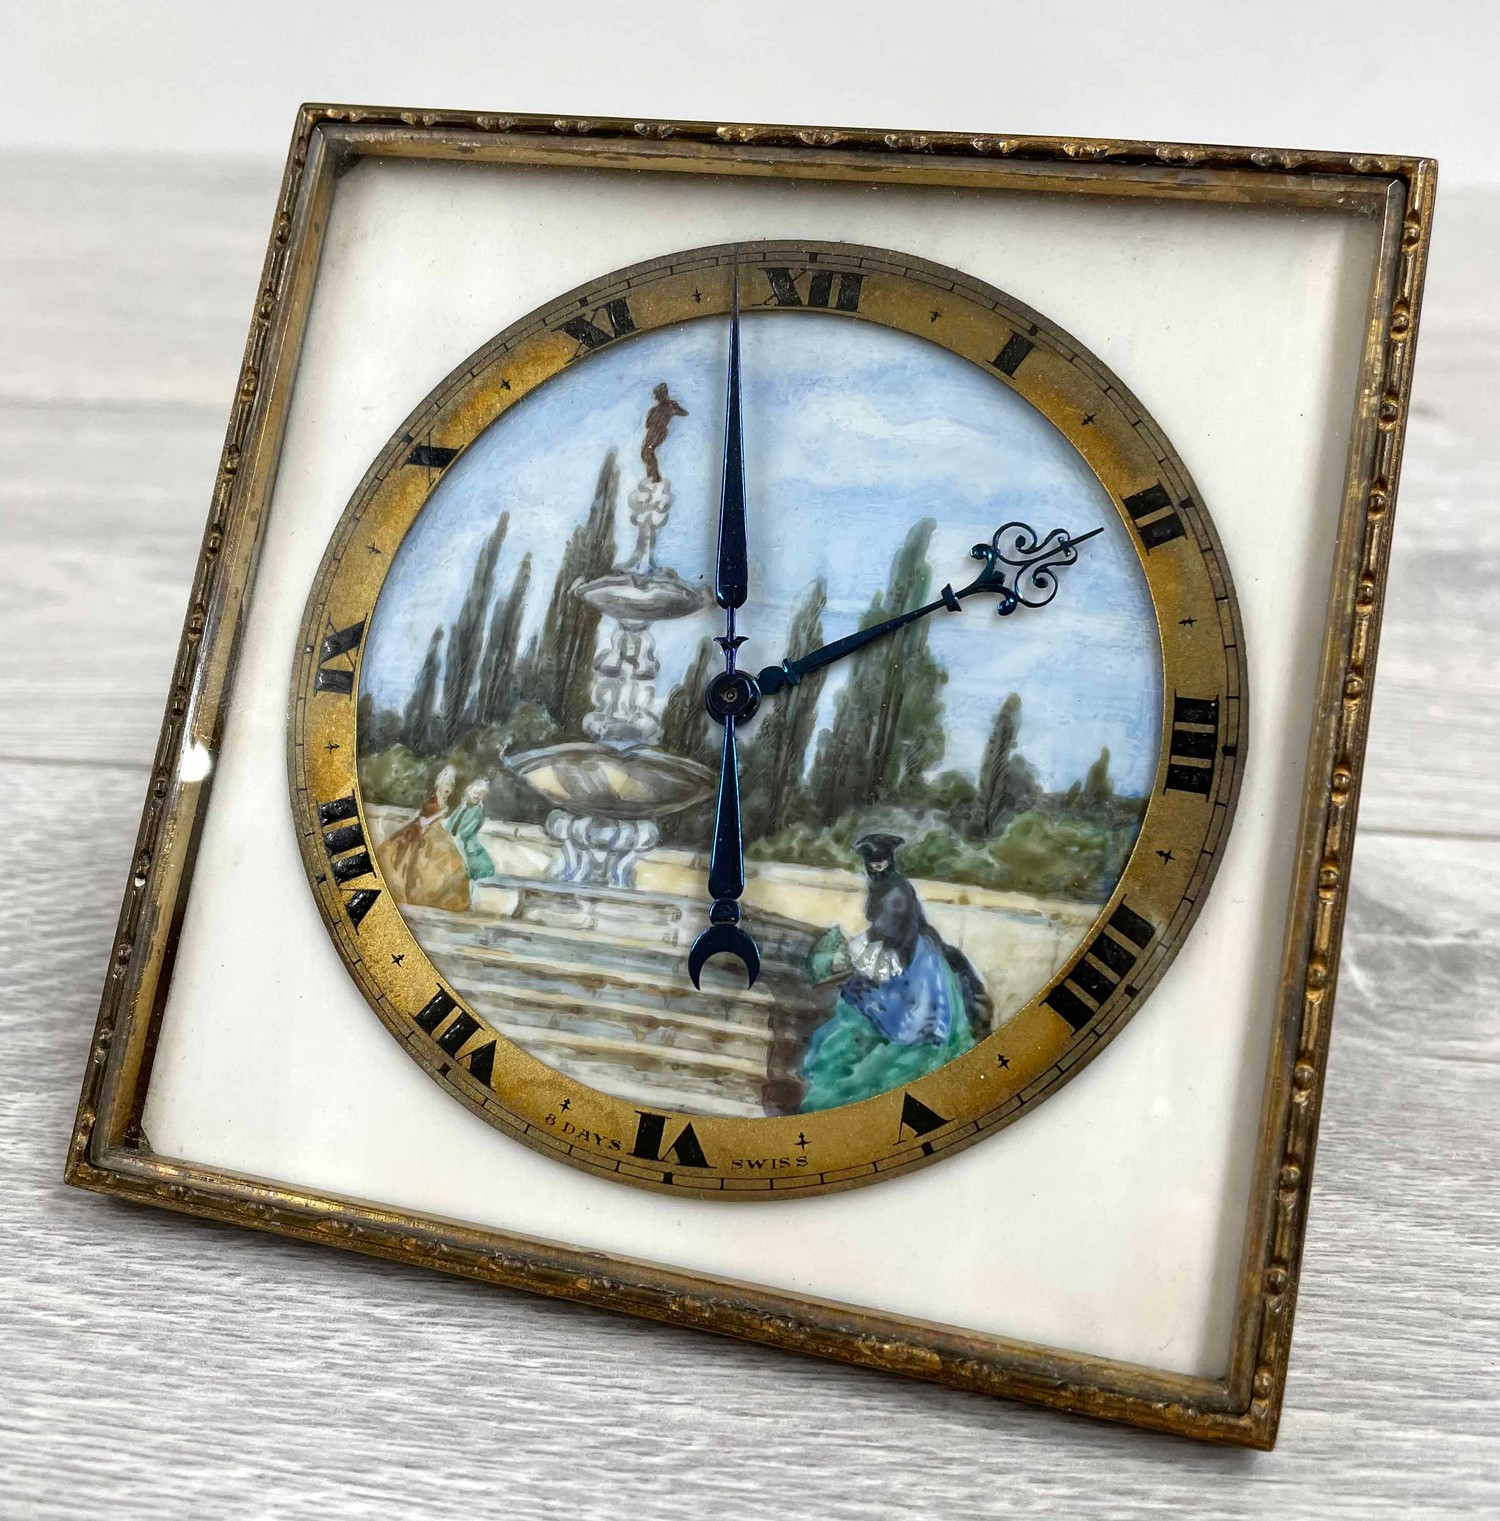 Good quality Swiss 8 Day easel square clock timepiece, with a painted dial depicting figures at a - Image 2 of 4